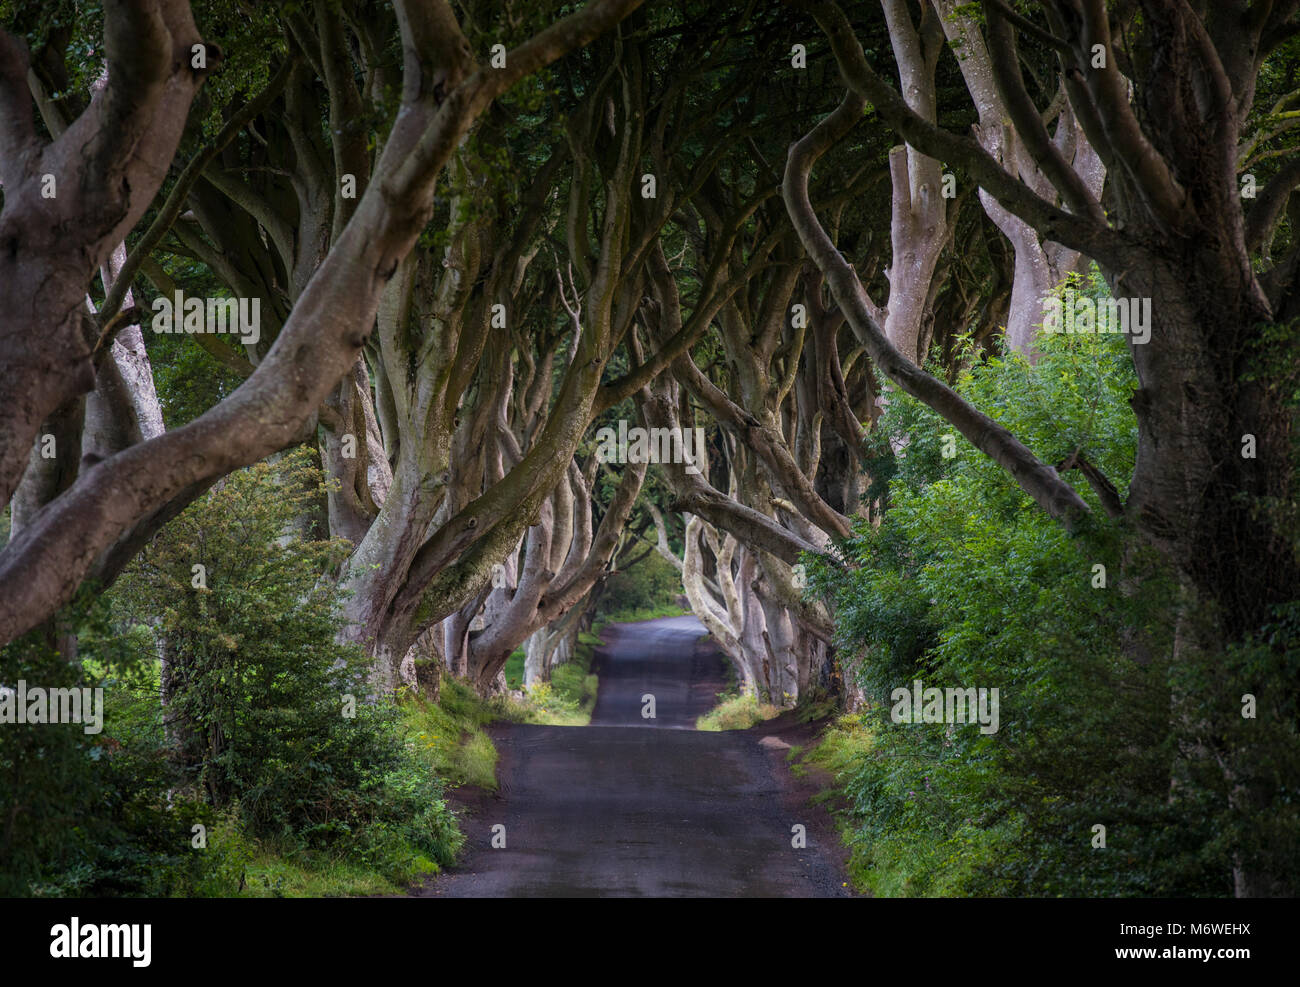 The Dark Hedges in County Antrim, Northern Ireland - Stock Image